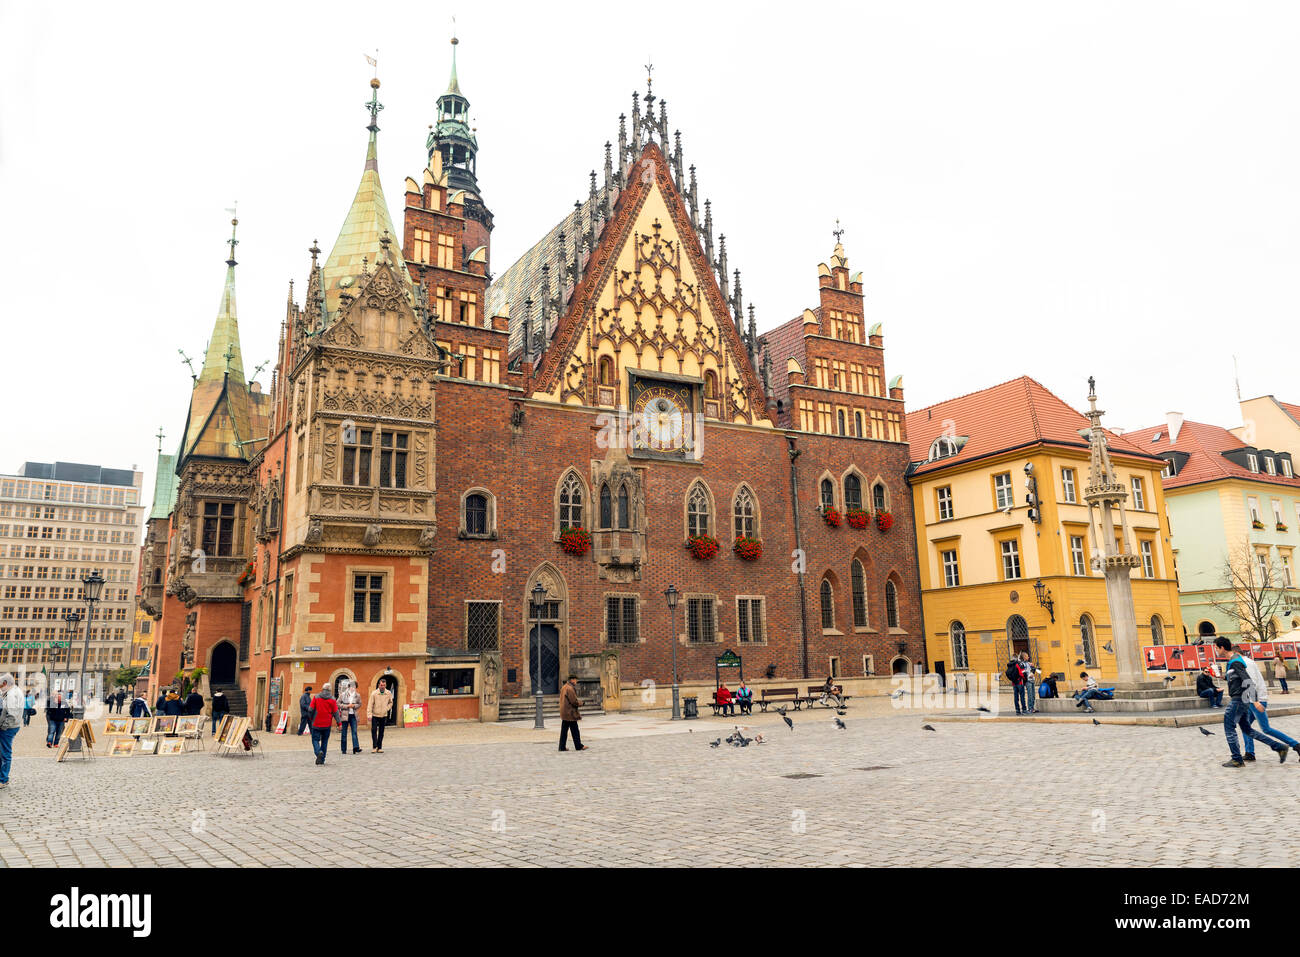 WROCLAW, POLAND - OCTOBER24, 2014: old gothic city hall of Wroclaw, Poland - Stock Image